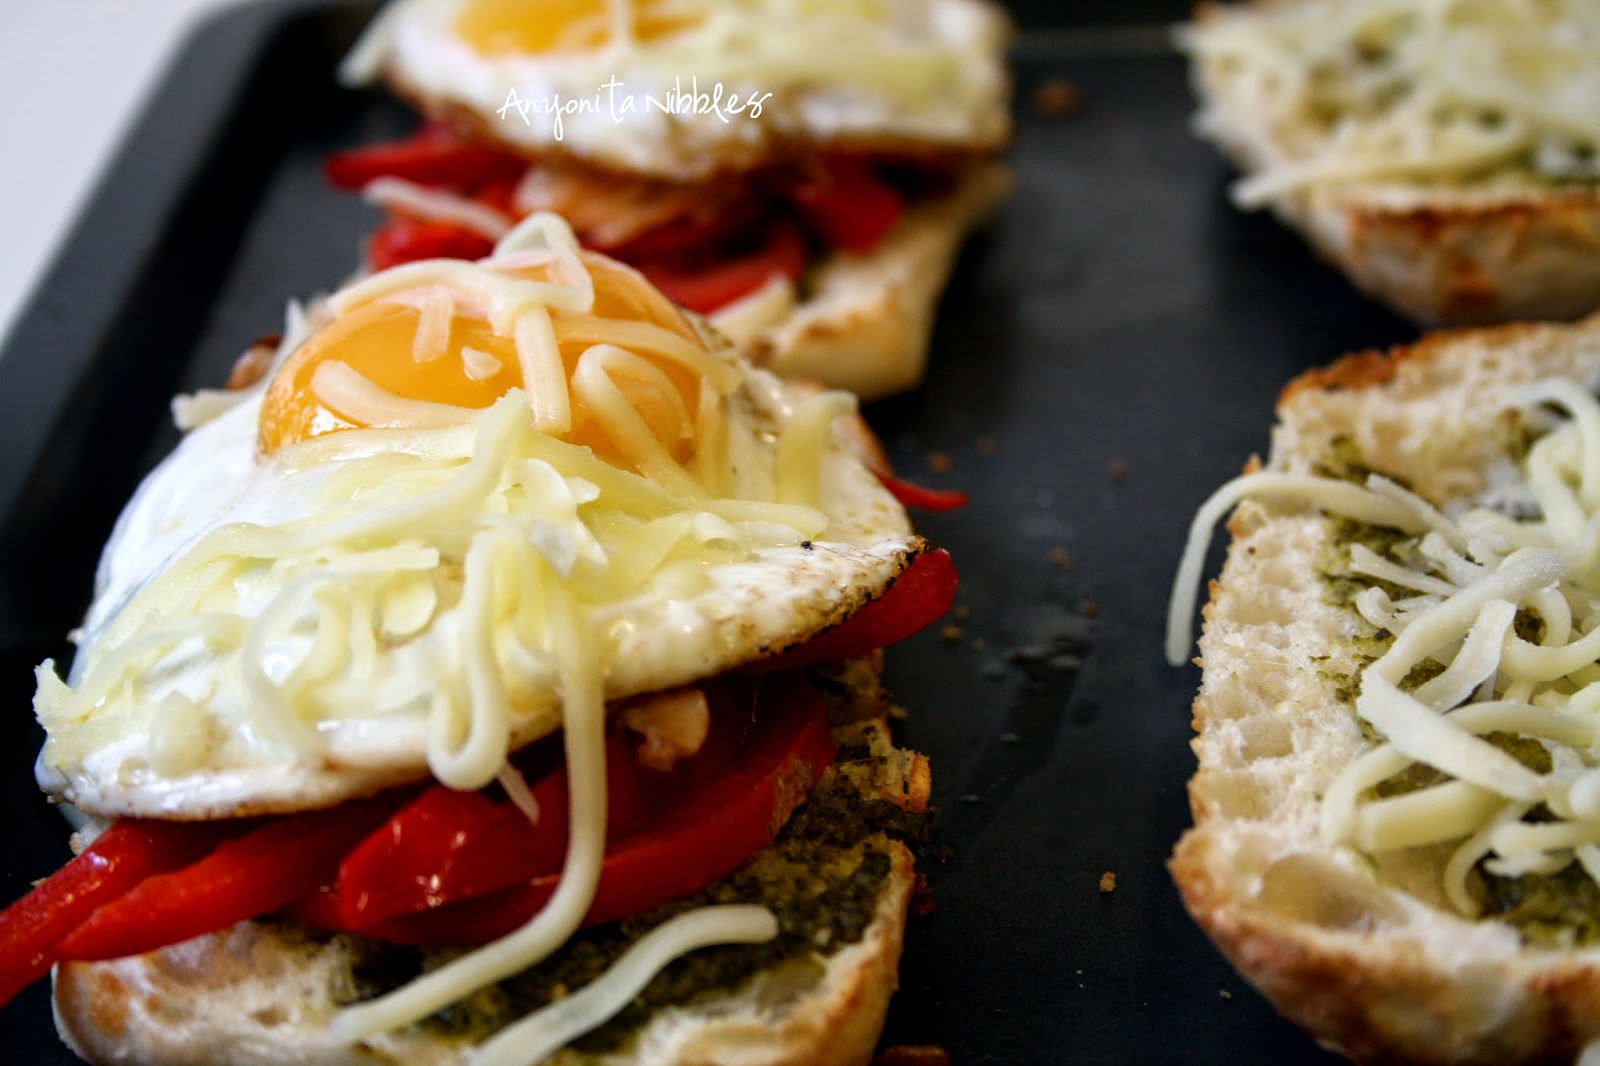 Finish these vegetarian and gluten free ciabattas off in the grill/broiler for a delicious crunch!